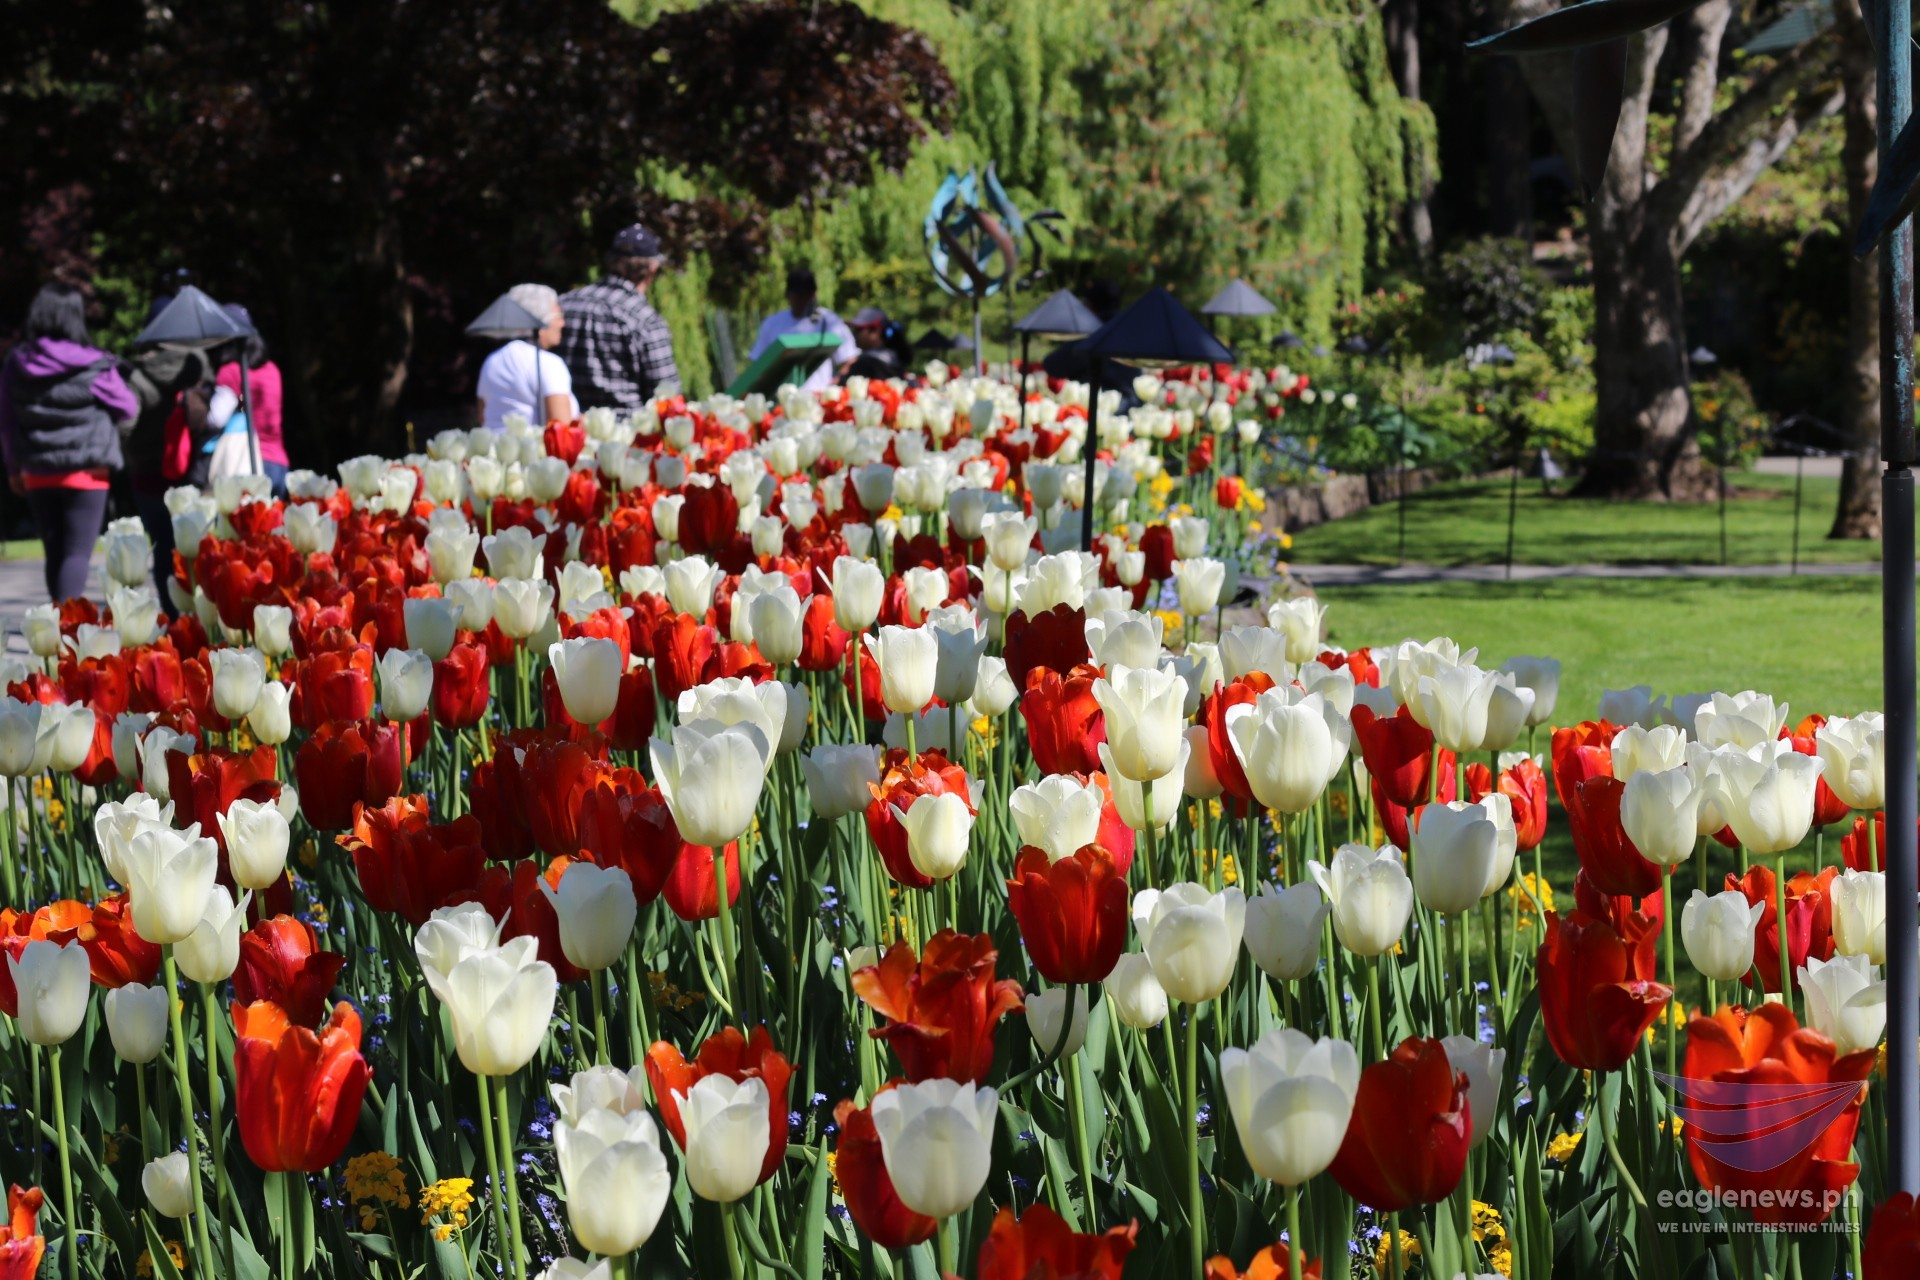 #EBCphotography:  Tulips of various colors at the Butchart Gardens in Canada